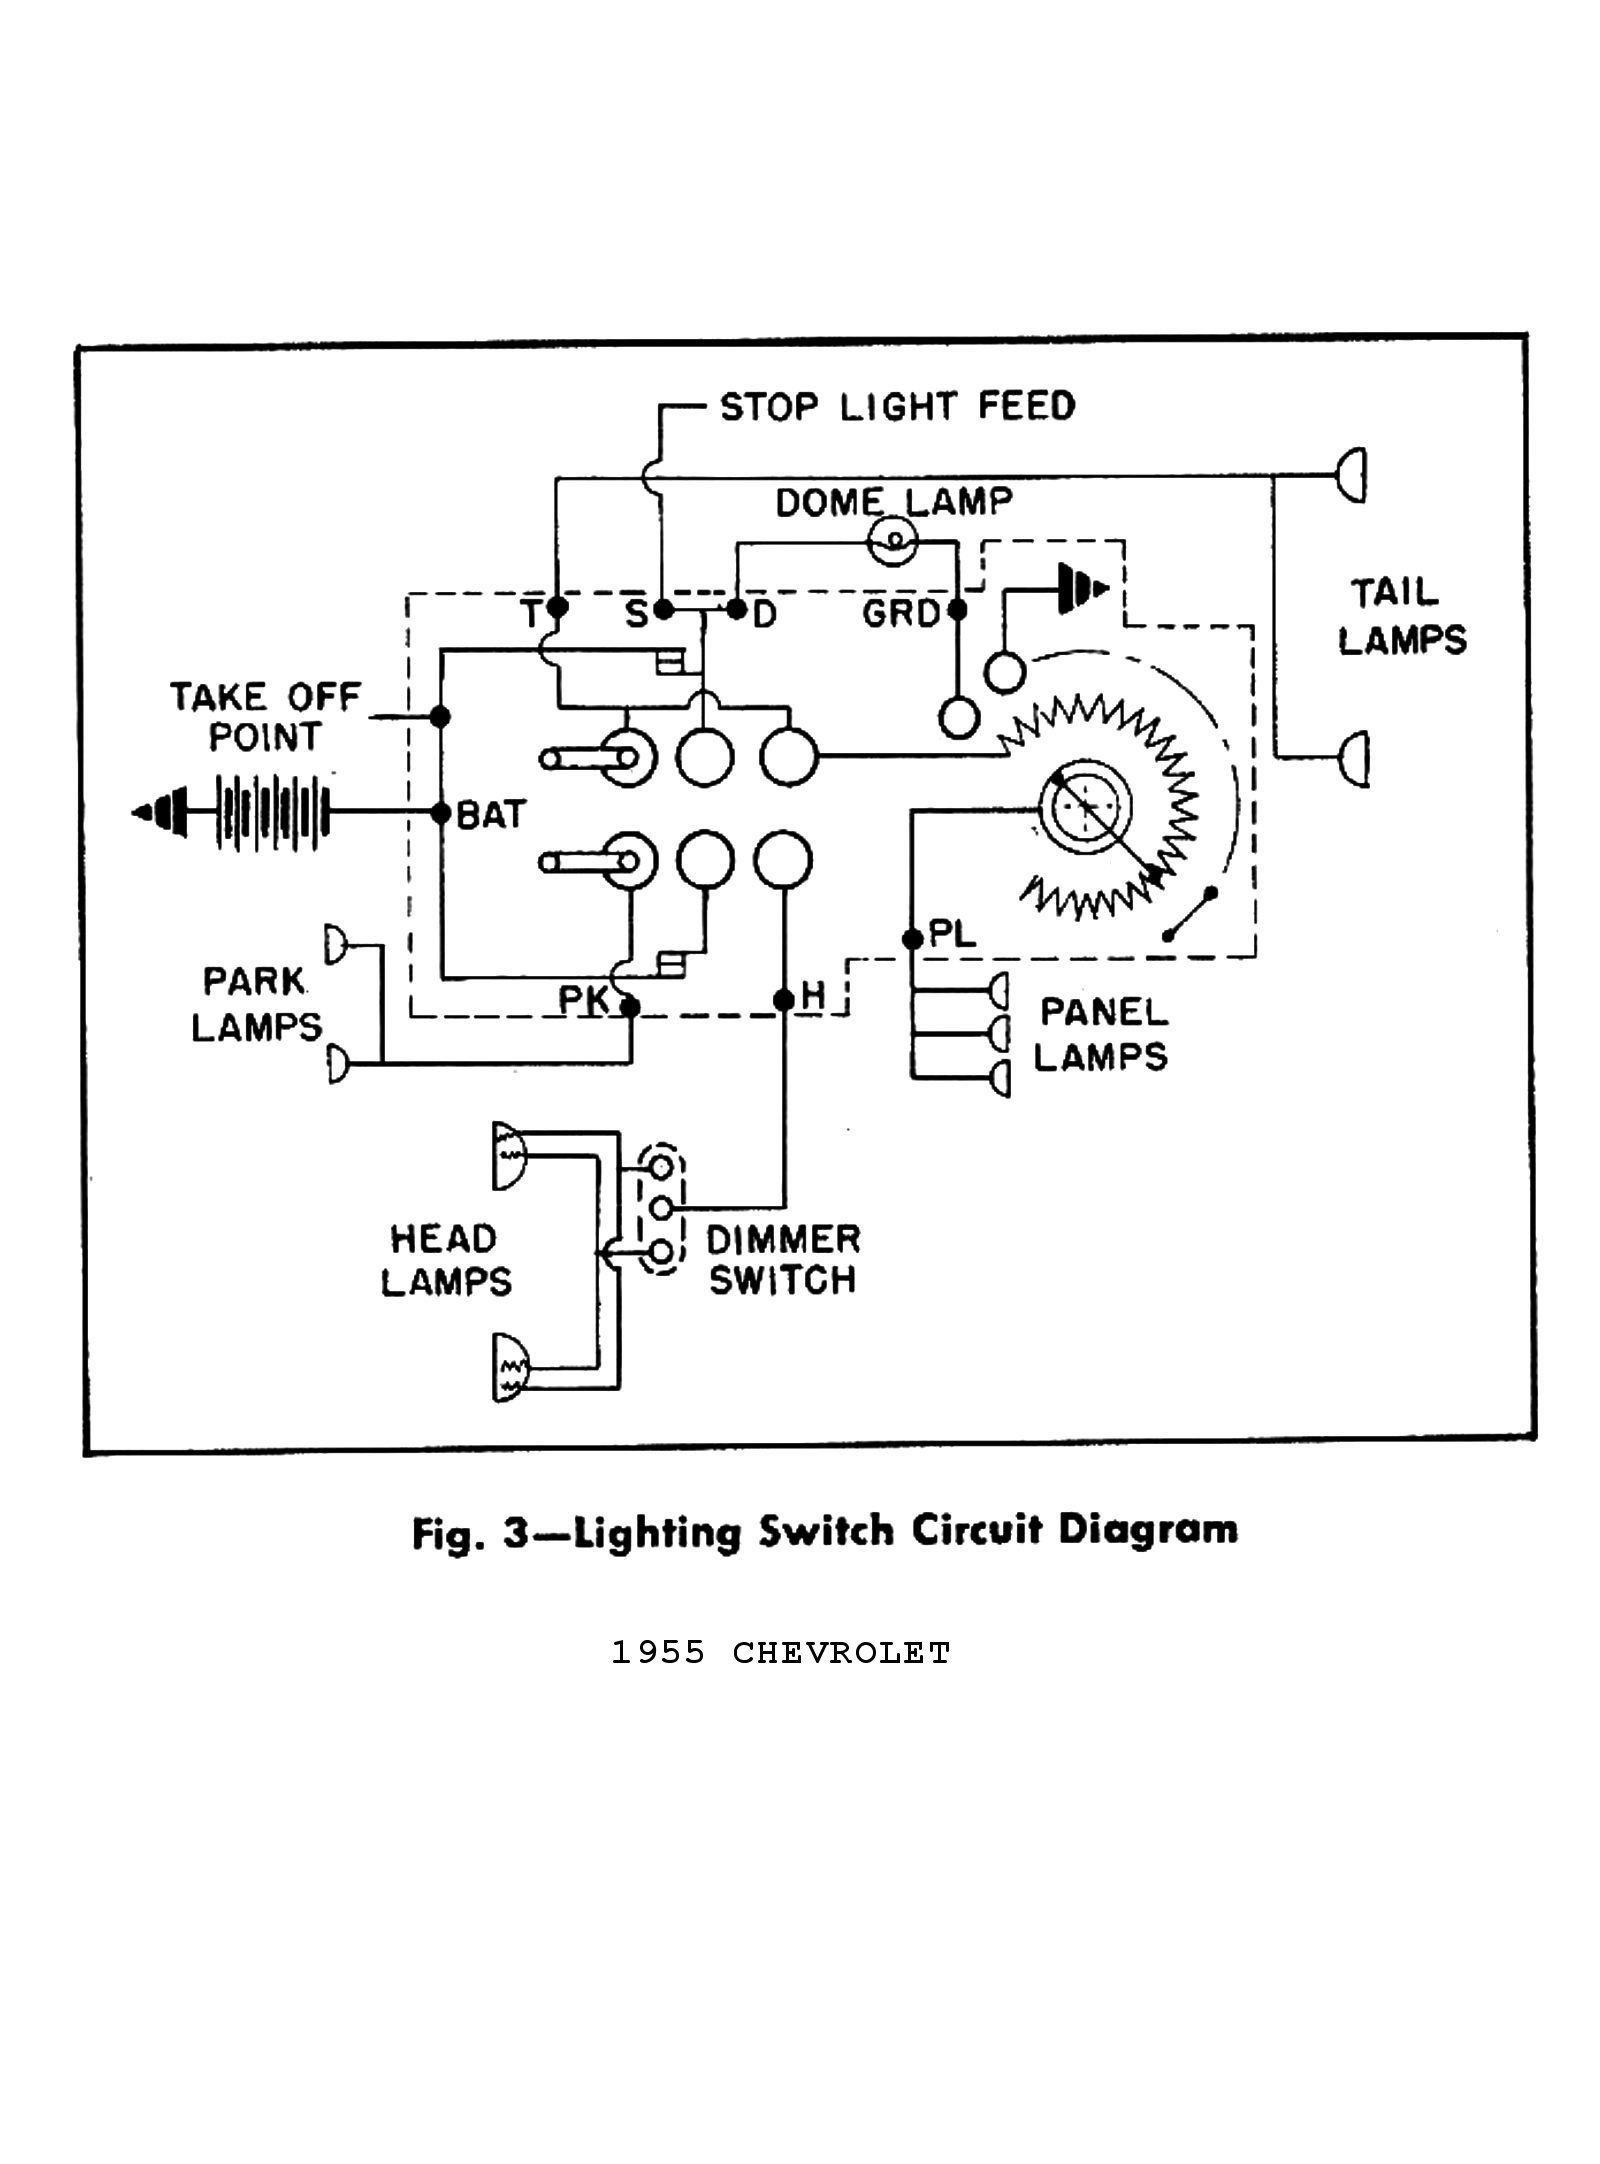 New Wiring Diagram For Light Switch Diagram Wiringdiagram Diagramming Diagramm Visuals Visualisation Light Switch Wiring Electrical Switch Wiring Diagram